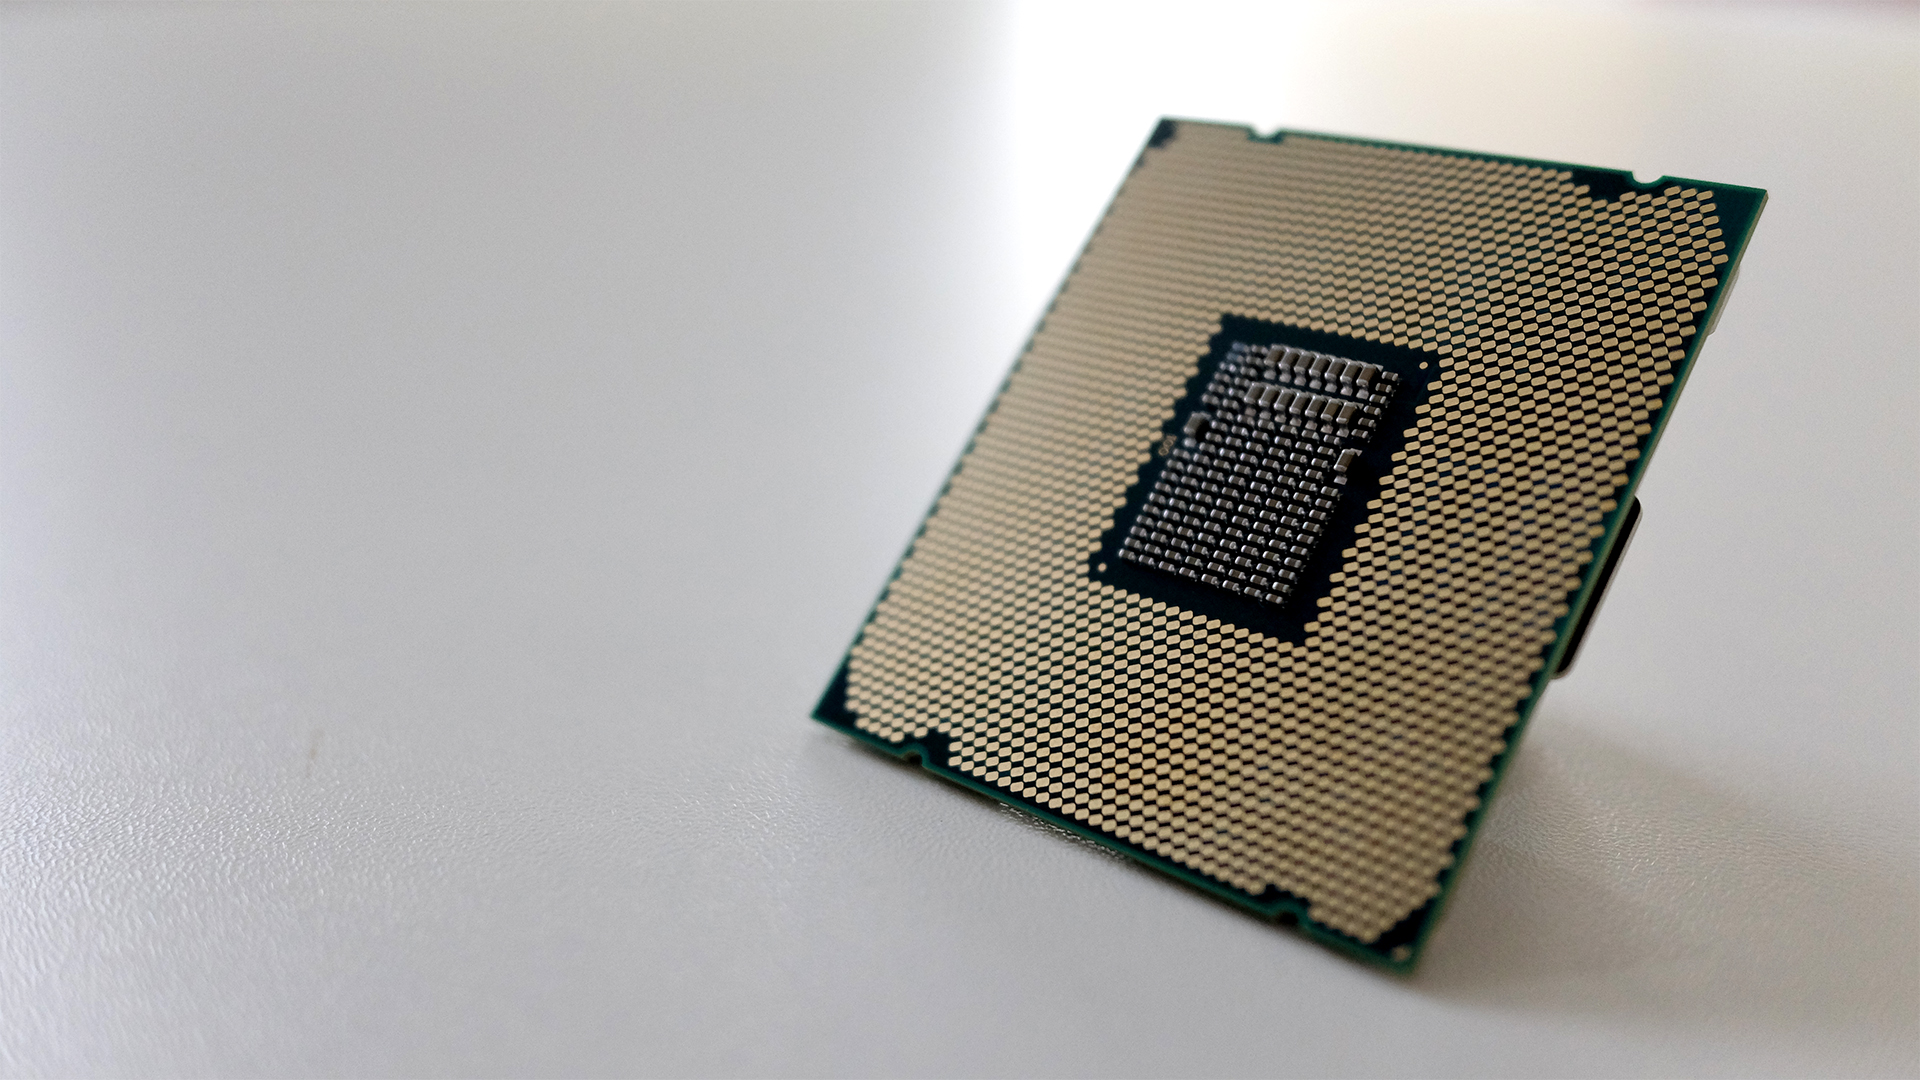 Intel Core i9 – 10900K benchmarks have leaked and it's still slower than the Ryzen 9 3900X